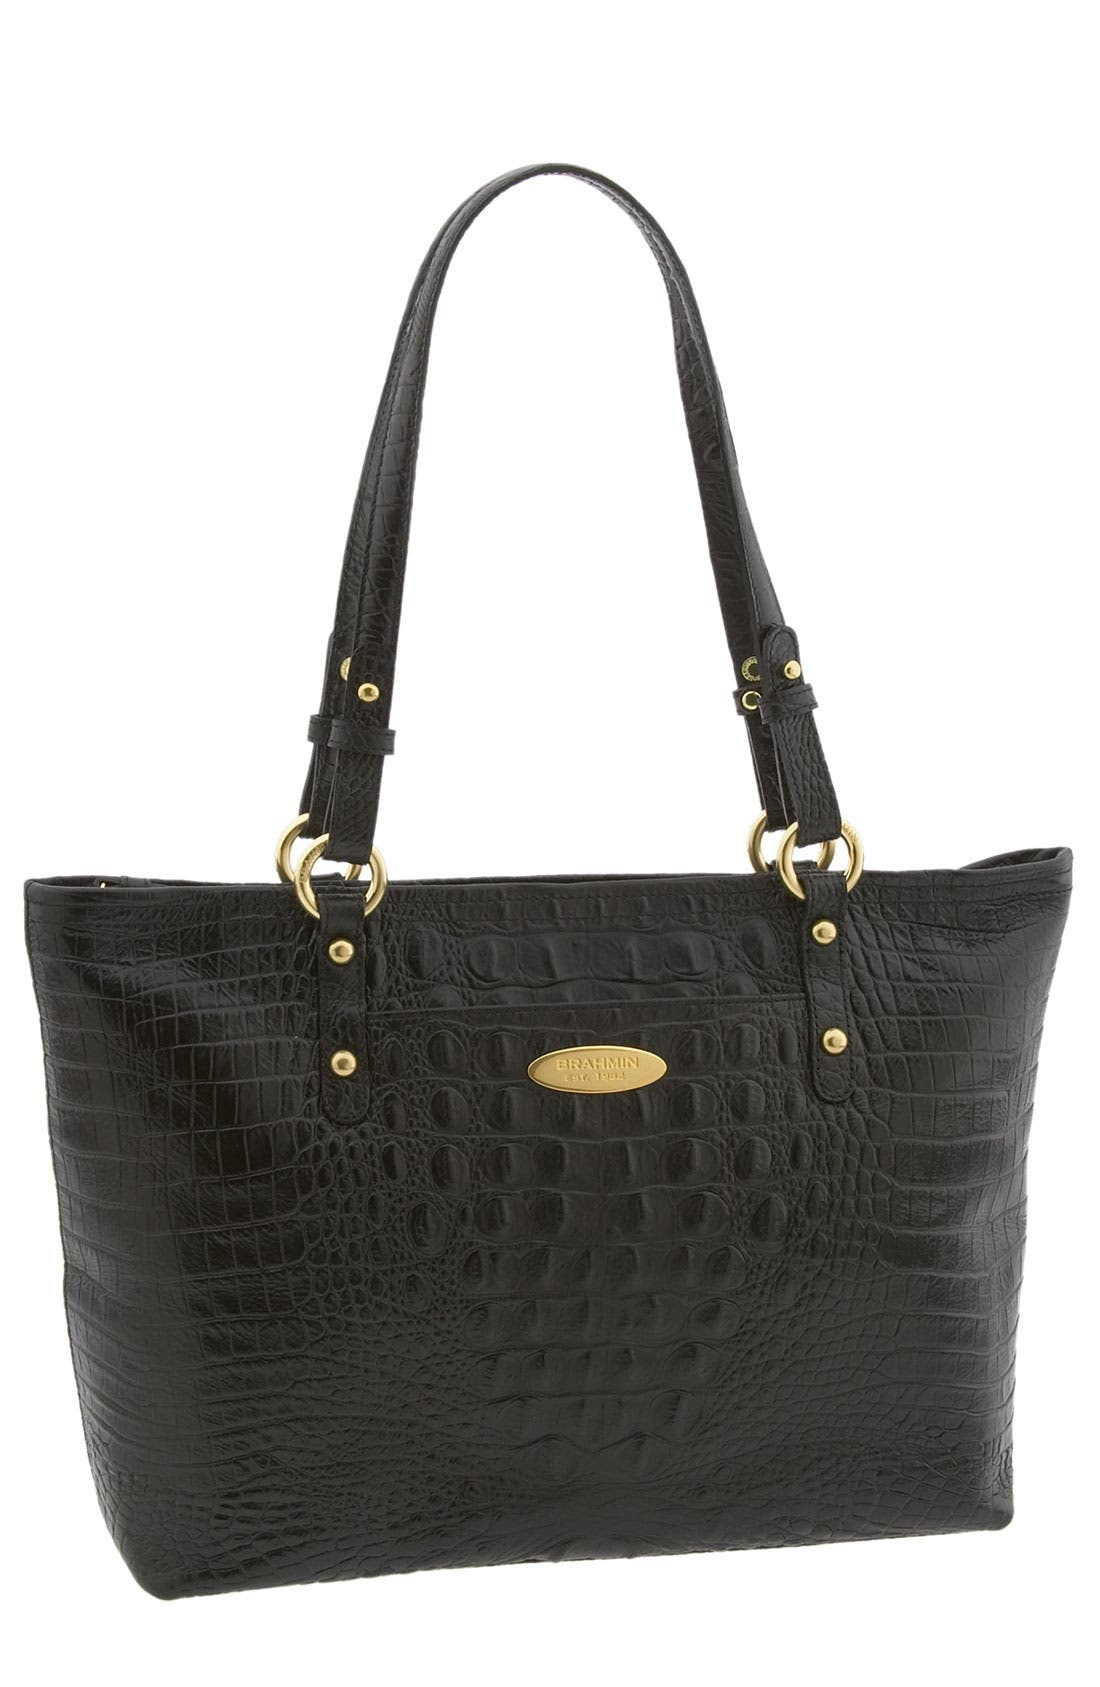 Alternate Image 1 Selected - Brahmin 'Alden - Medium' Zip Top Tote